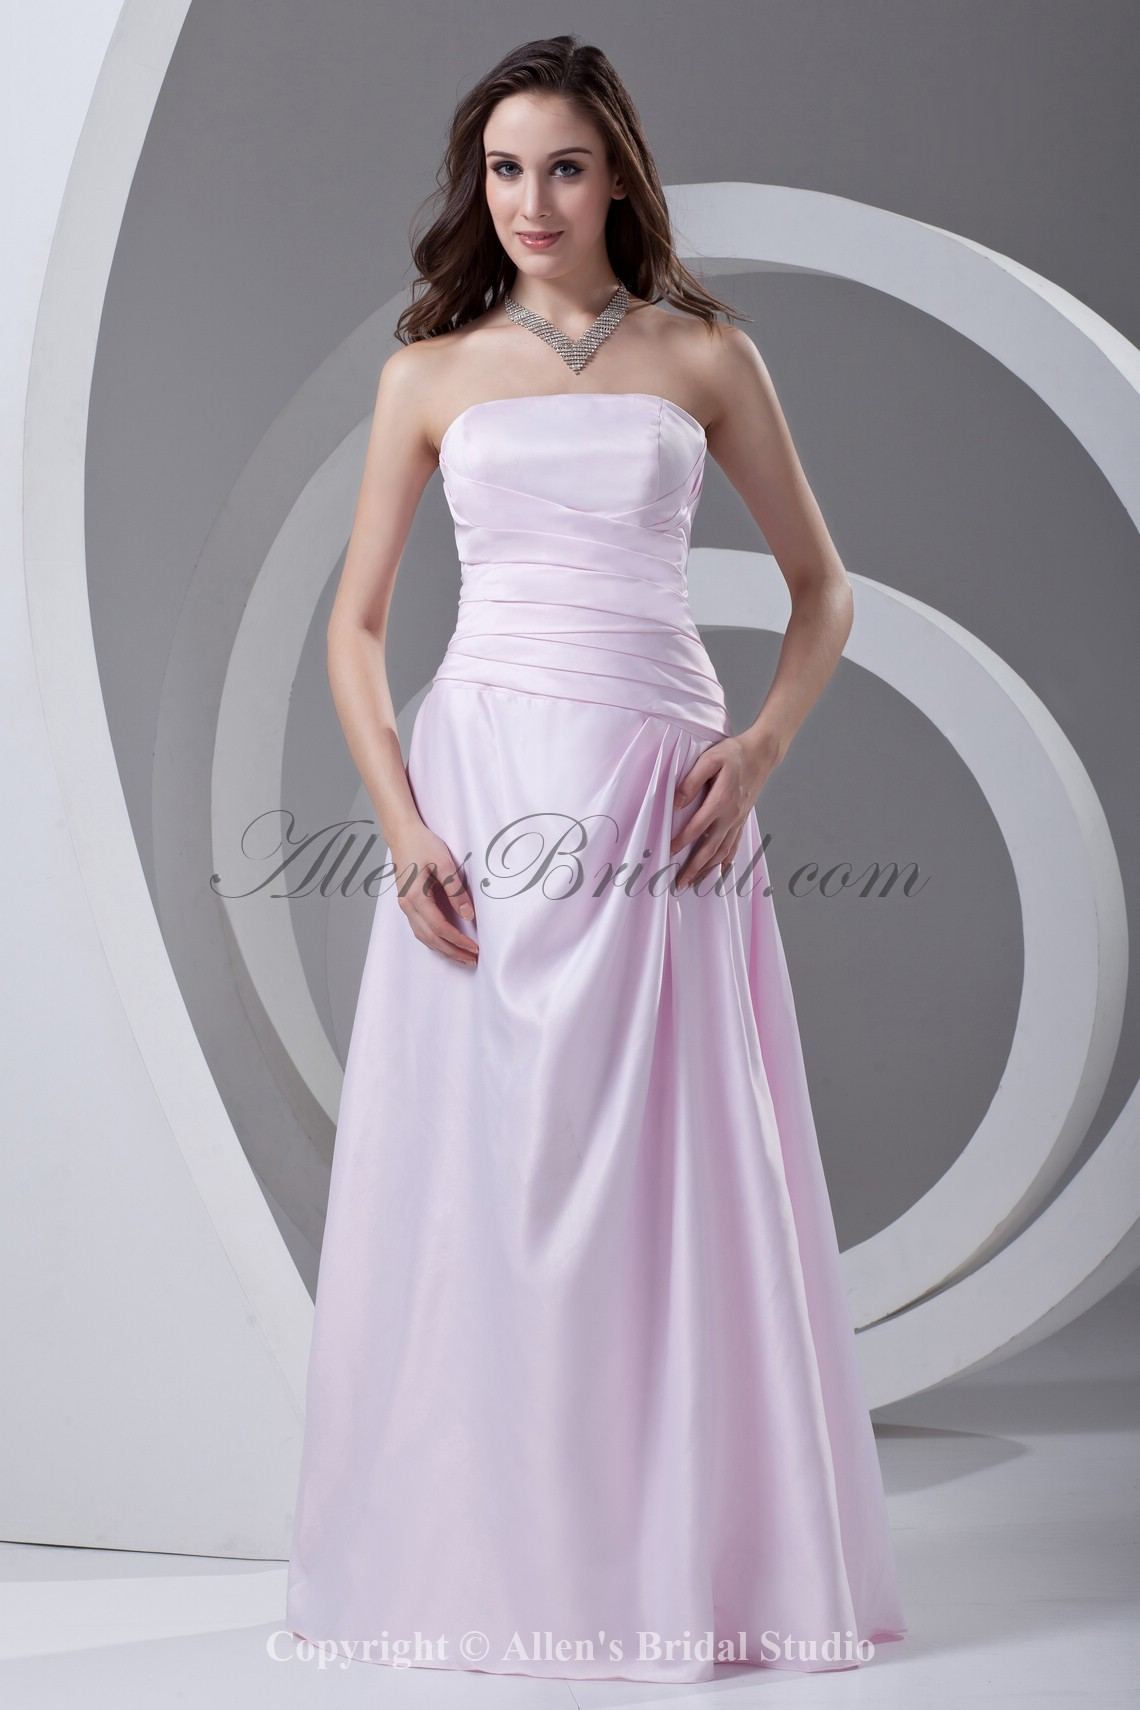 /356-2844/satin-strapless-neckline-a-line-floor-length-directionally-ruched-prom-dress.jpg